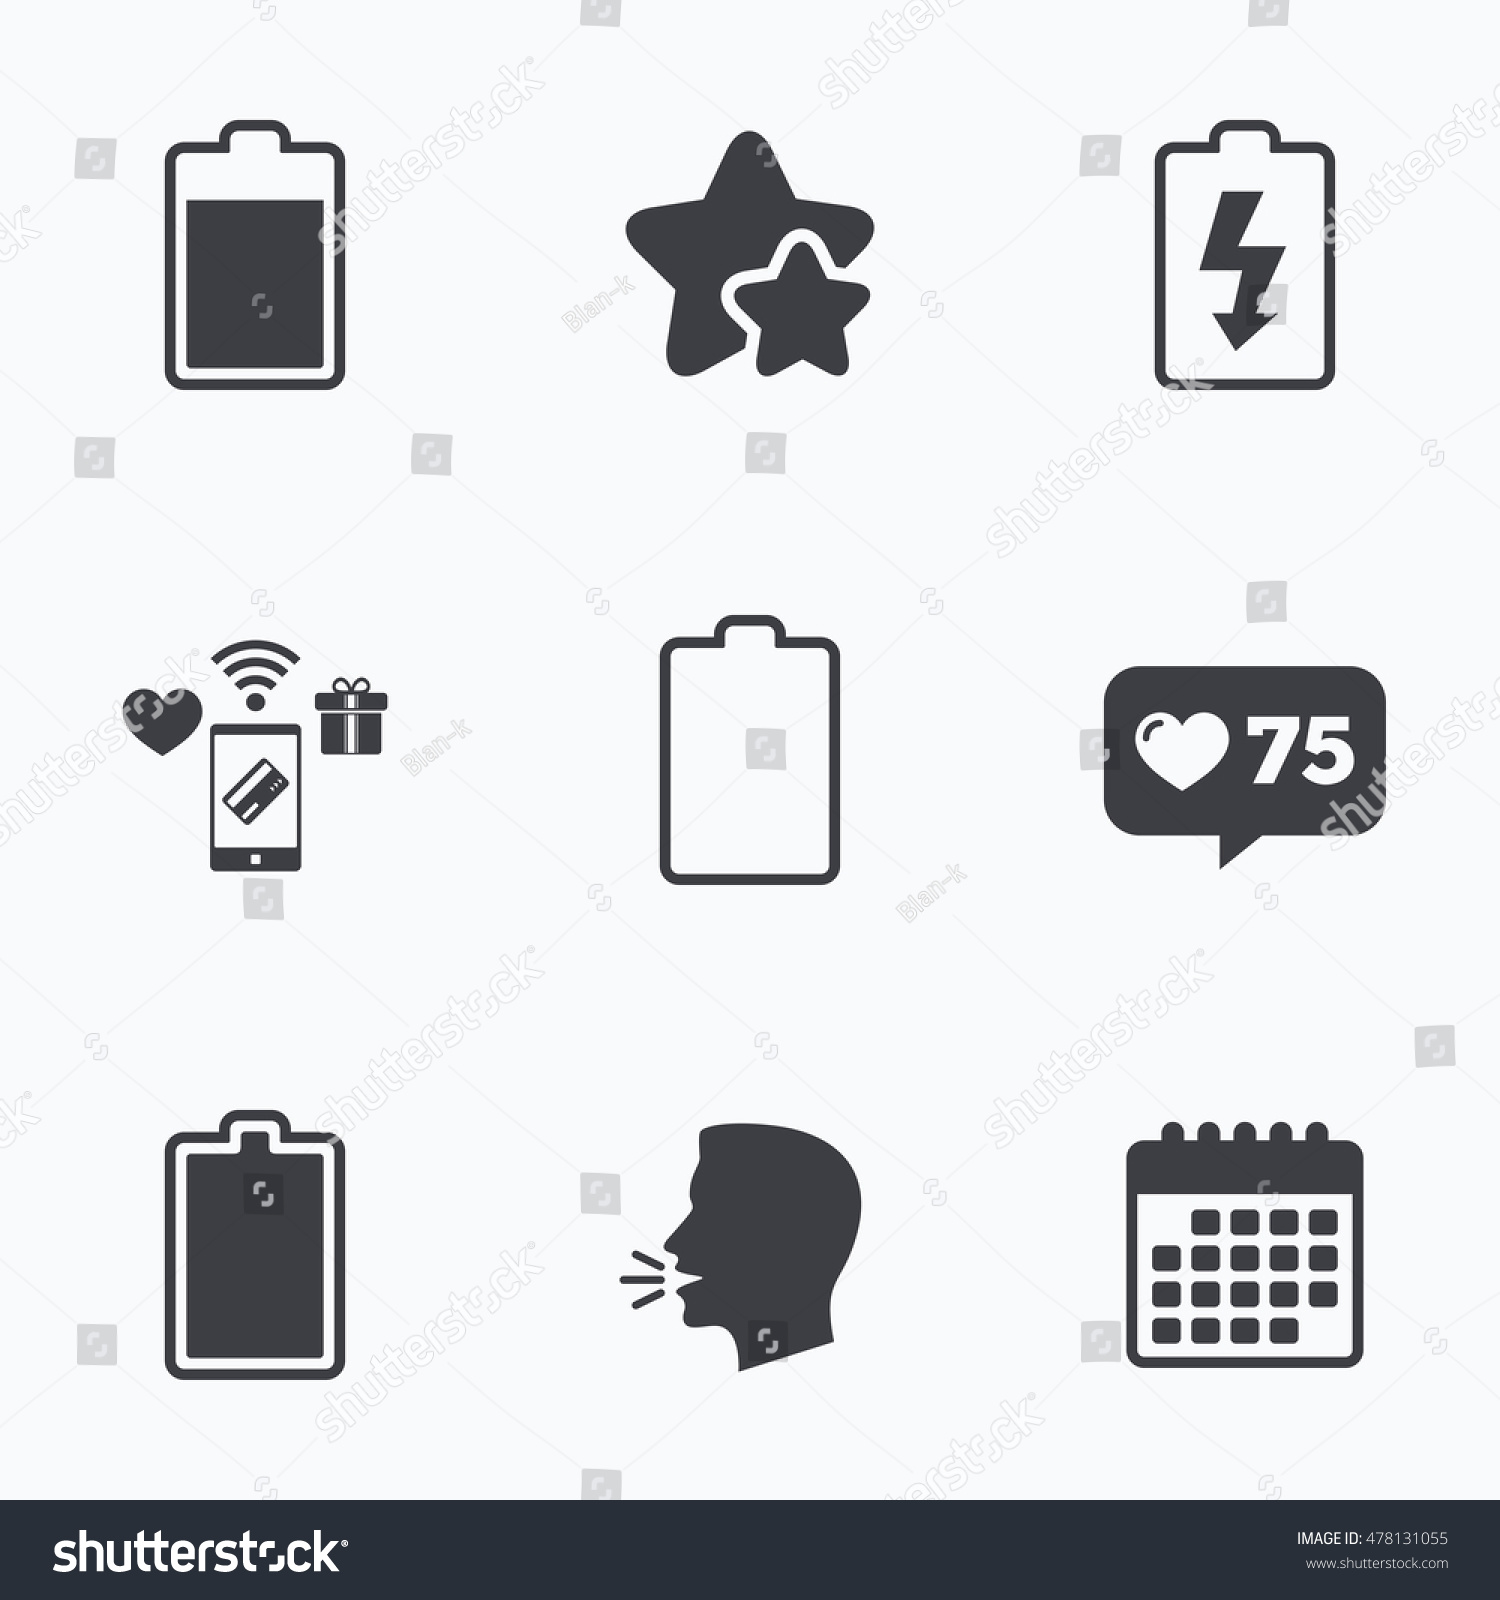 Battery Charging Icons Electricity Signs Symbols Stock Photo (Photo ...